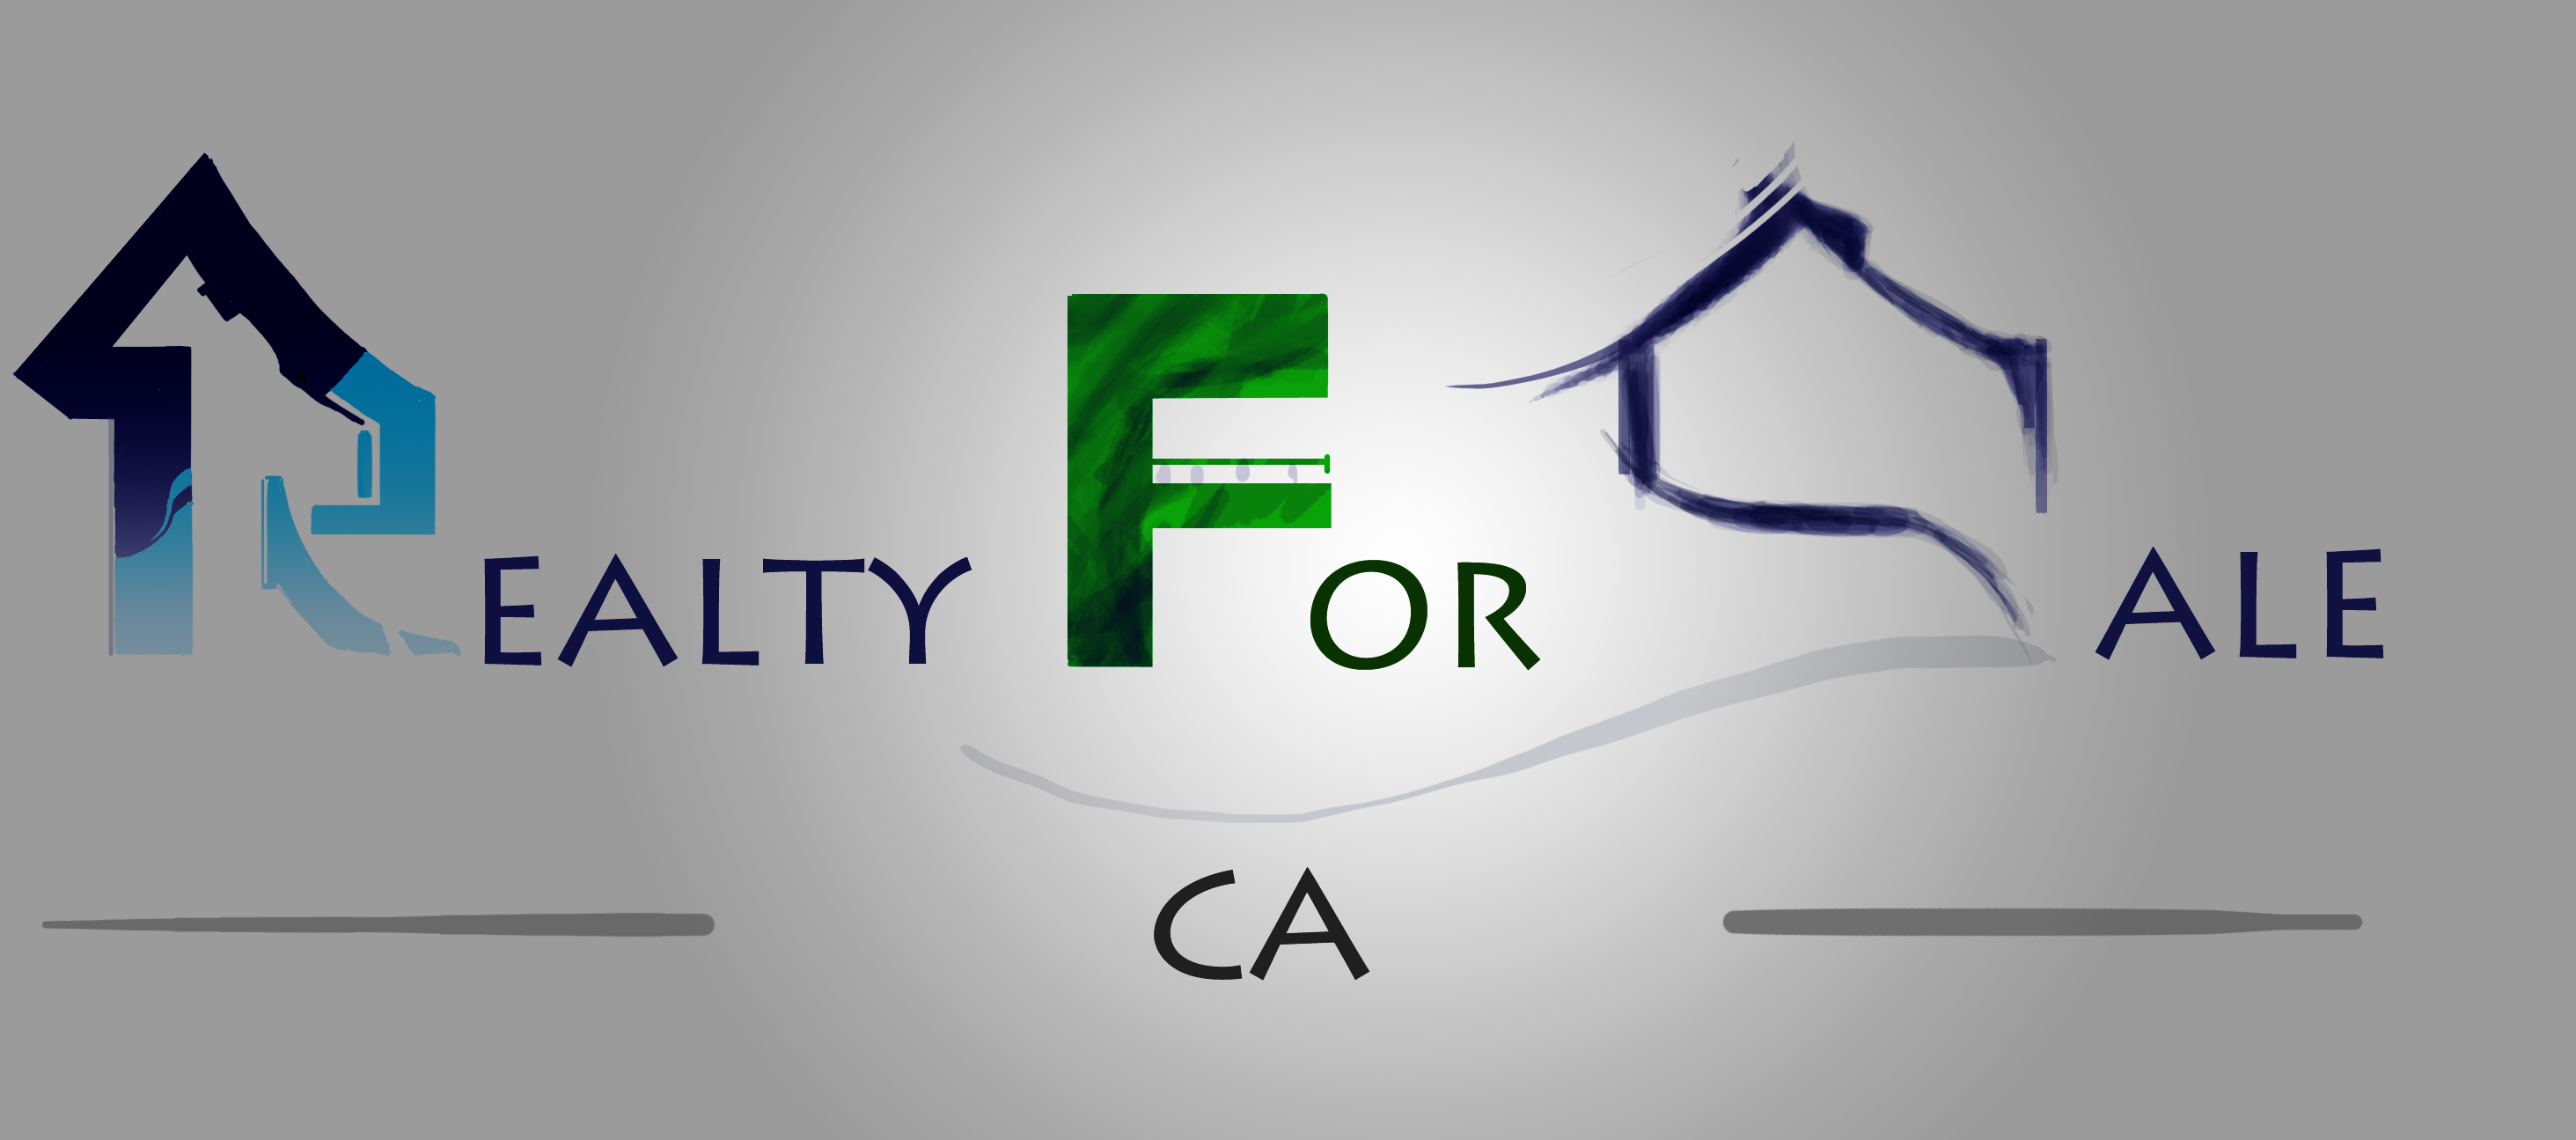 Logo Design by Satyaki Mandal - Entry No. 68 in the Logo Design Contest Inspiring Logo Design for RealtyForSale.ca.